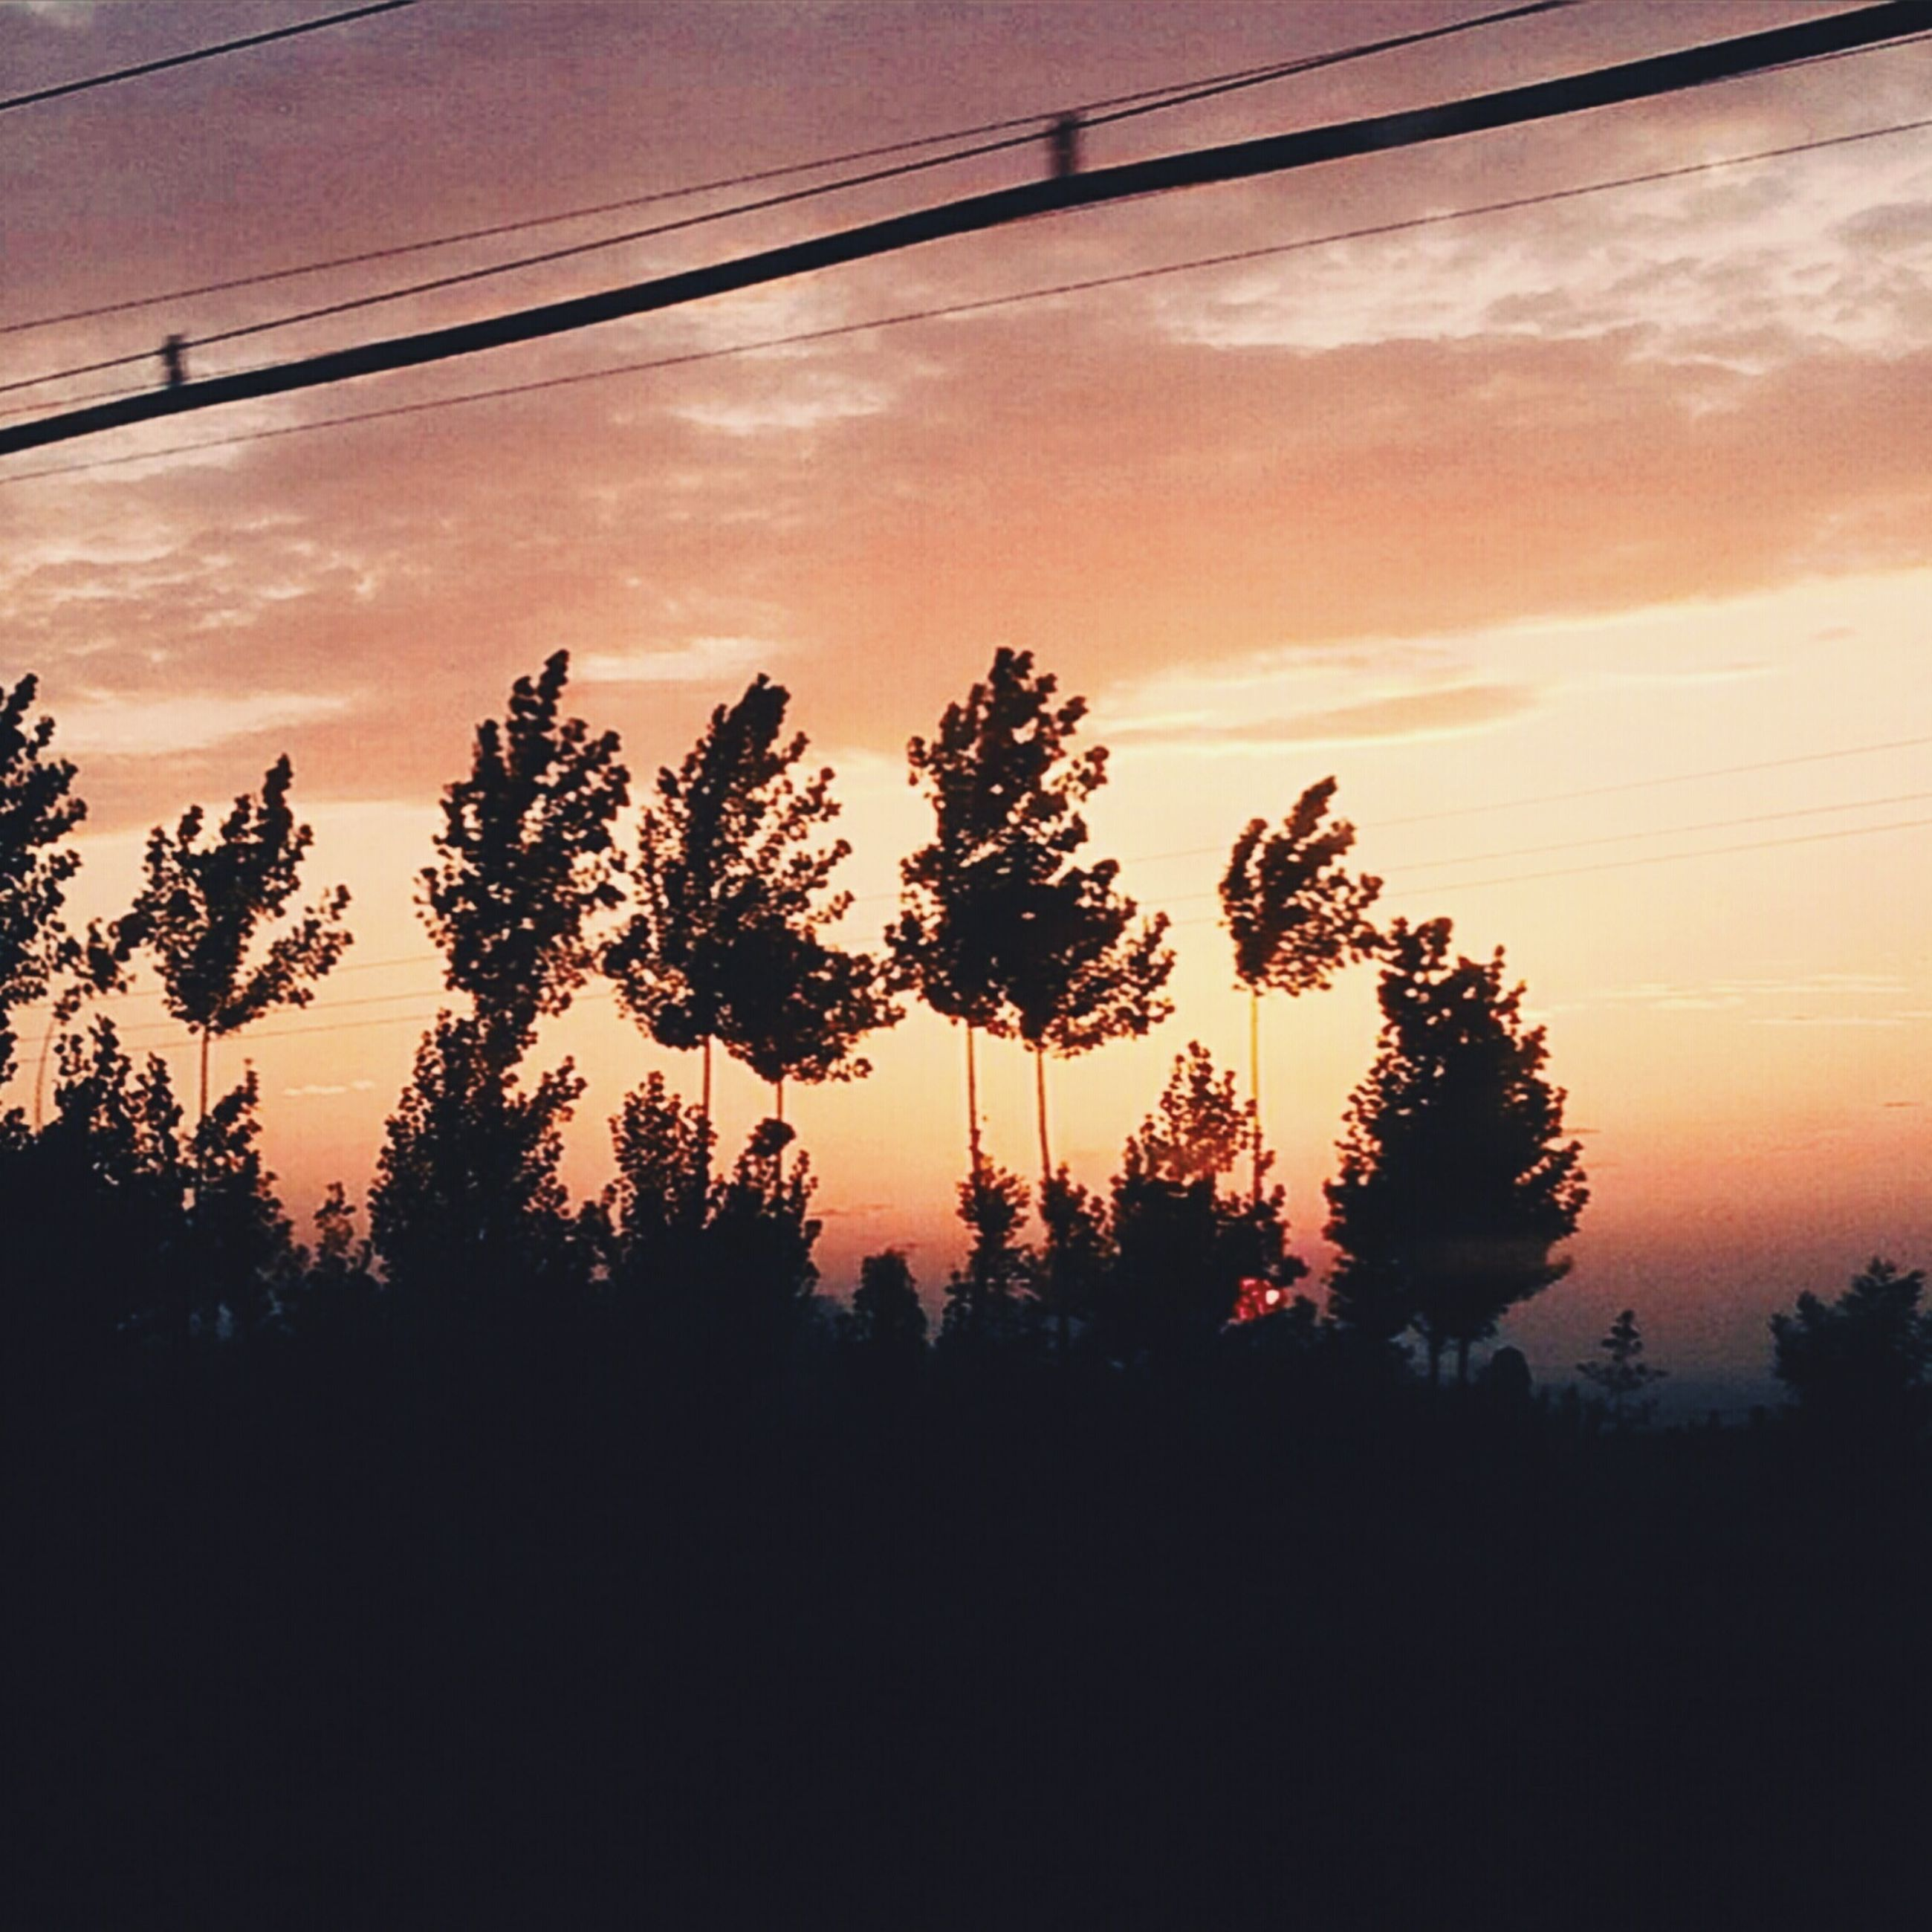 sunset, silhouette, tree, orange color, scenics, tranquility, beauty in nature, tranquil scene, sky, power line, nature, idyllic, electricity pylon, low angle view, growth, landscape, cable, connection, outdoors, electricity